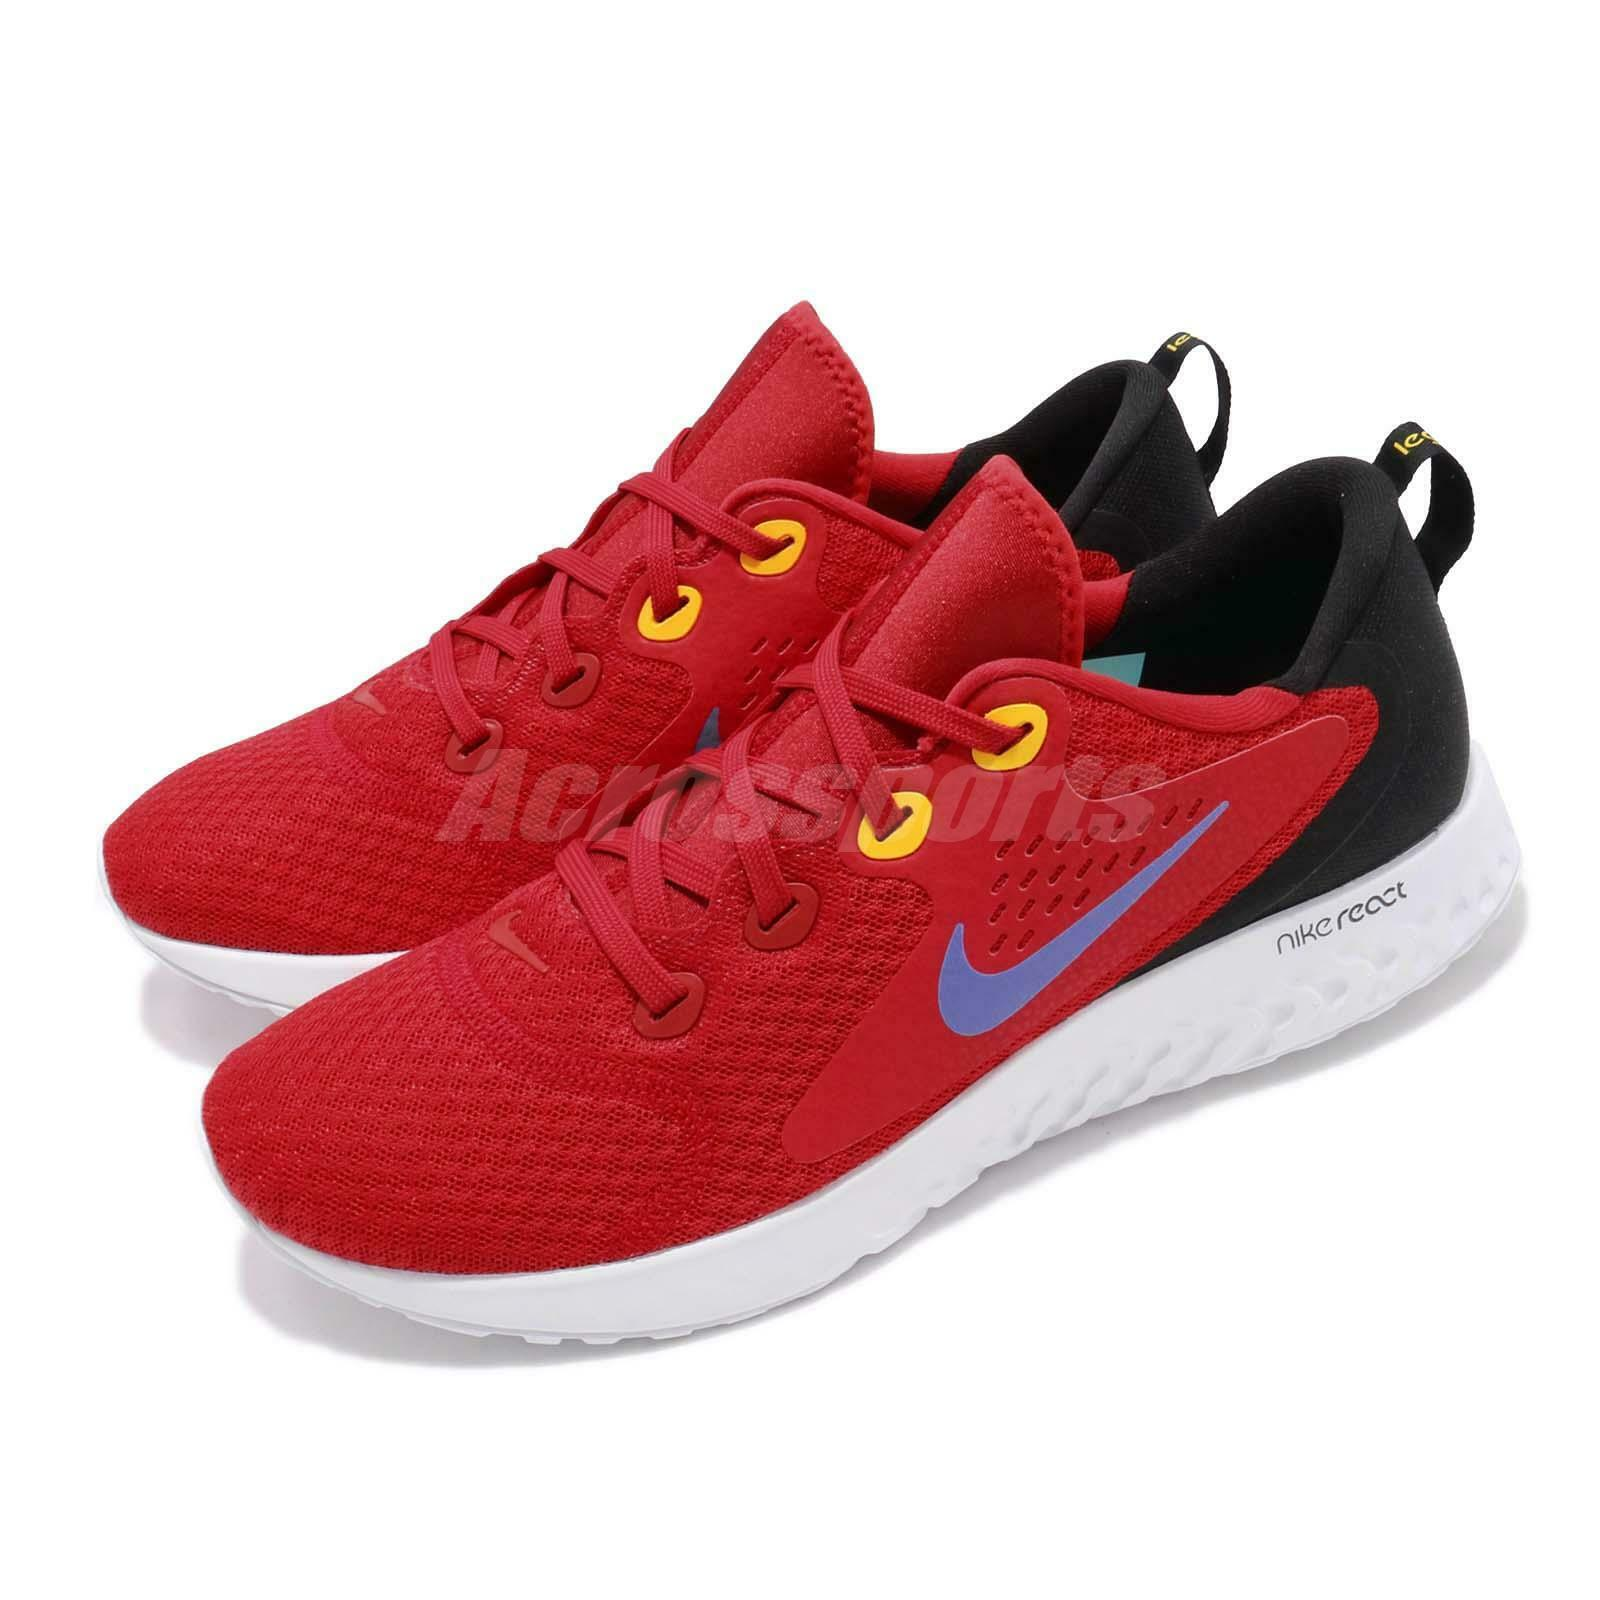 Nike Legend React Red Hyper Grape White Men Running shoes Sneakers AA1625-601